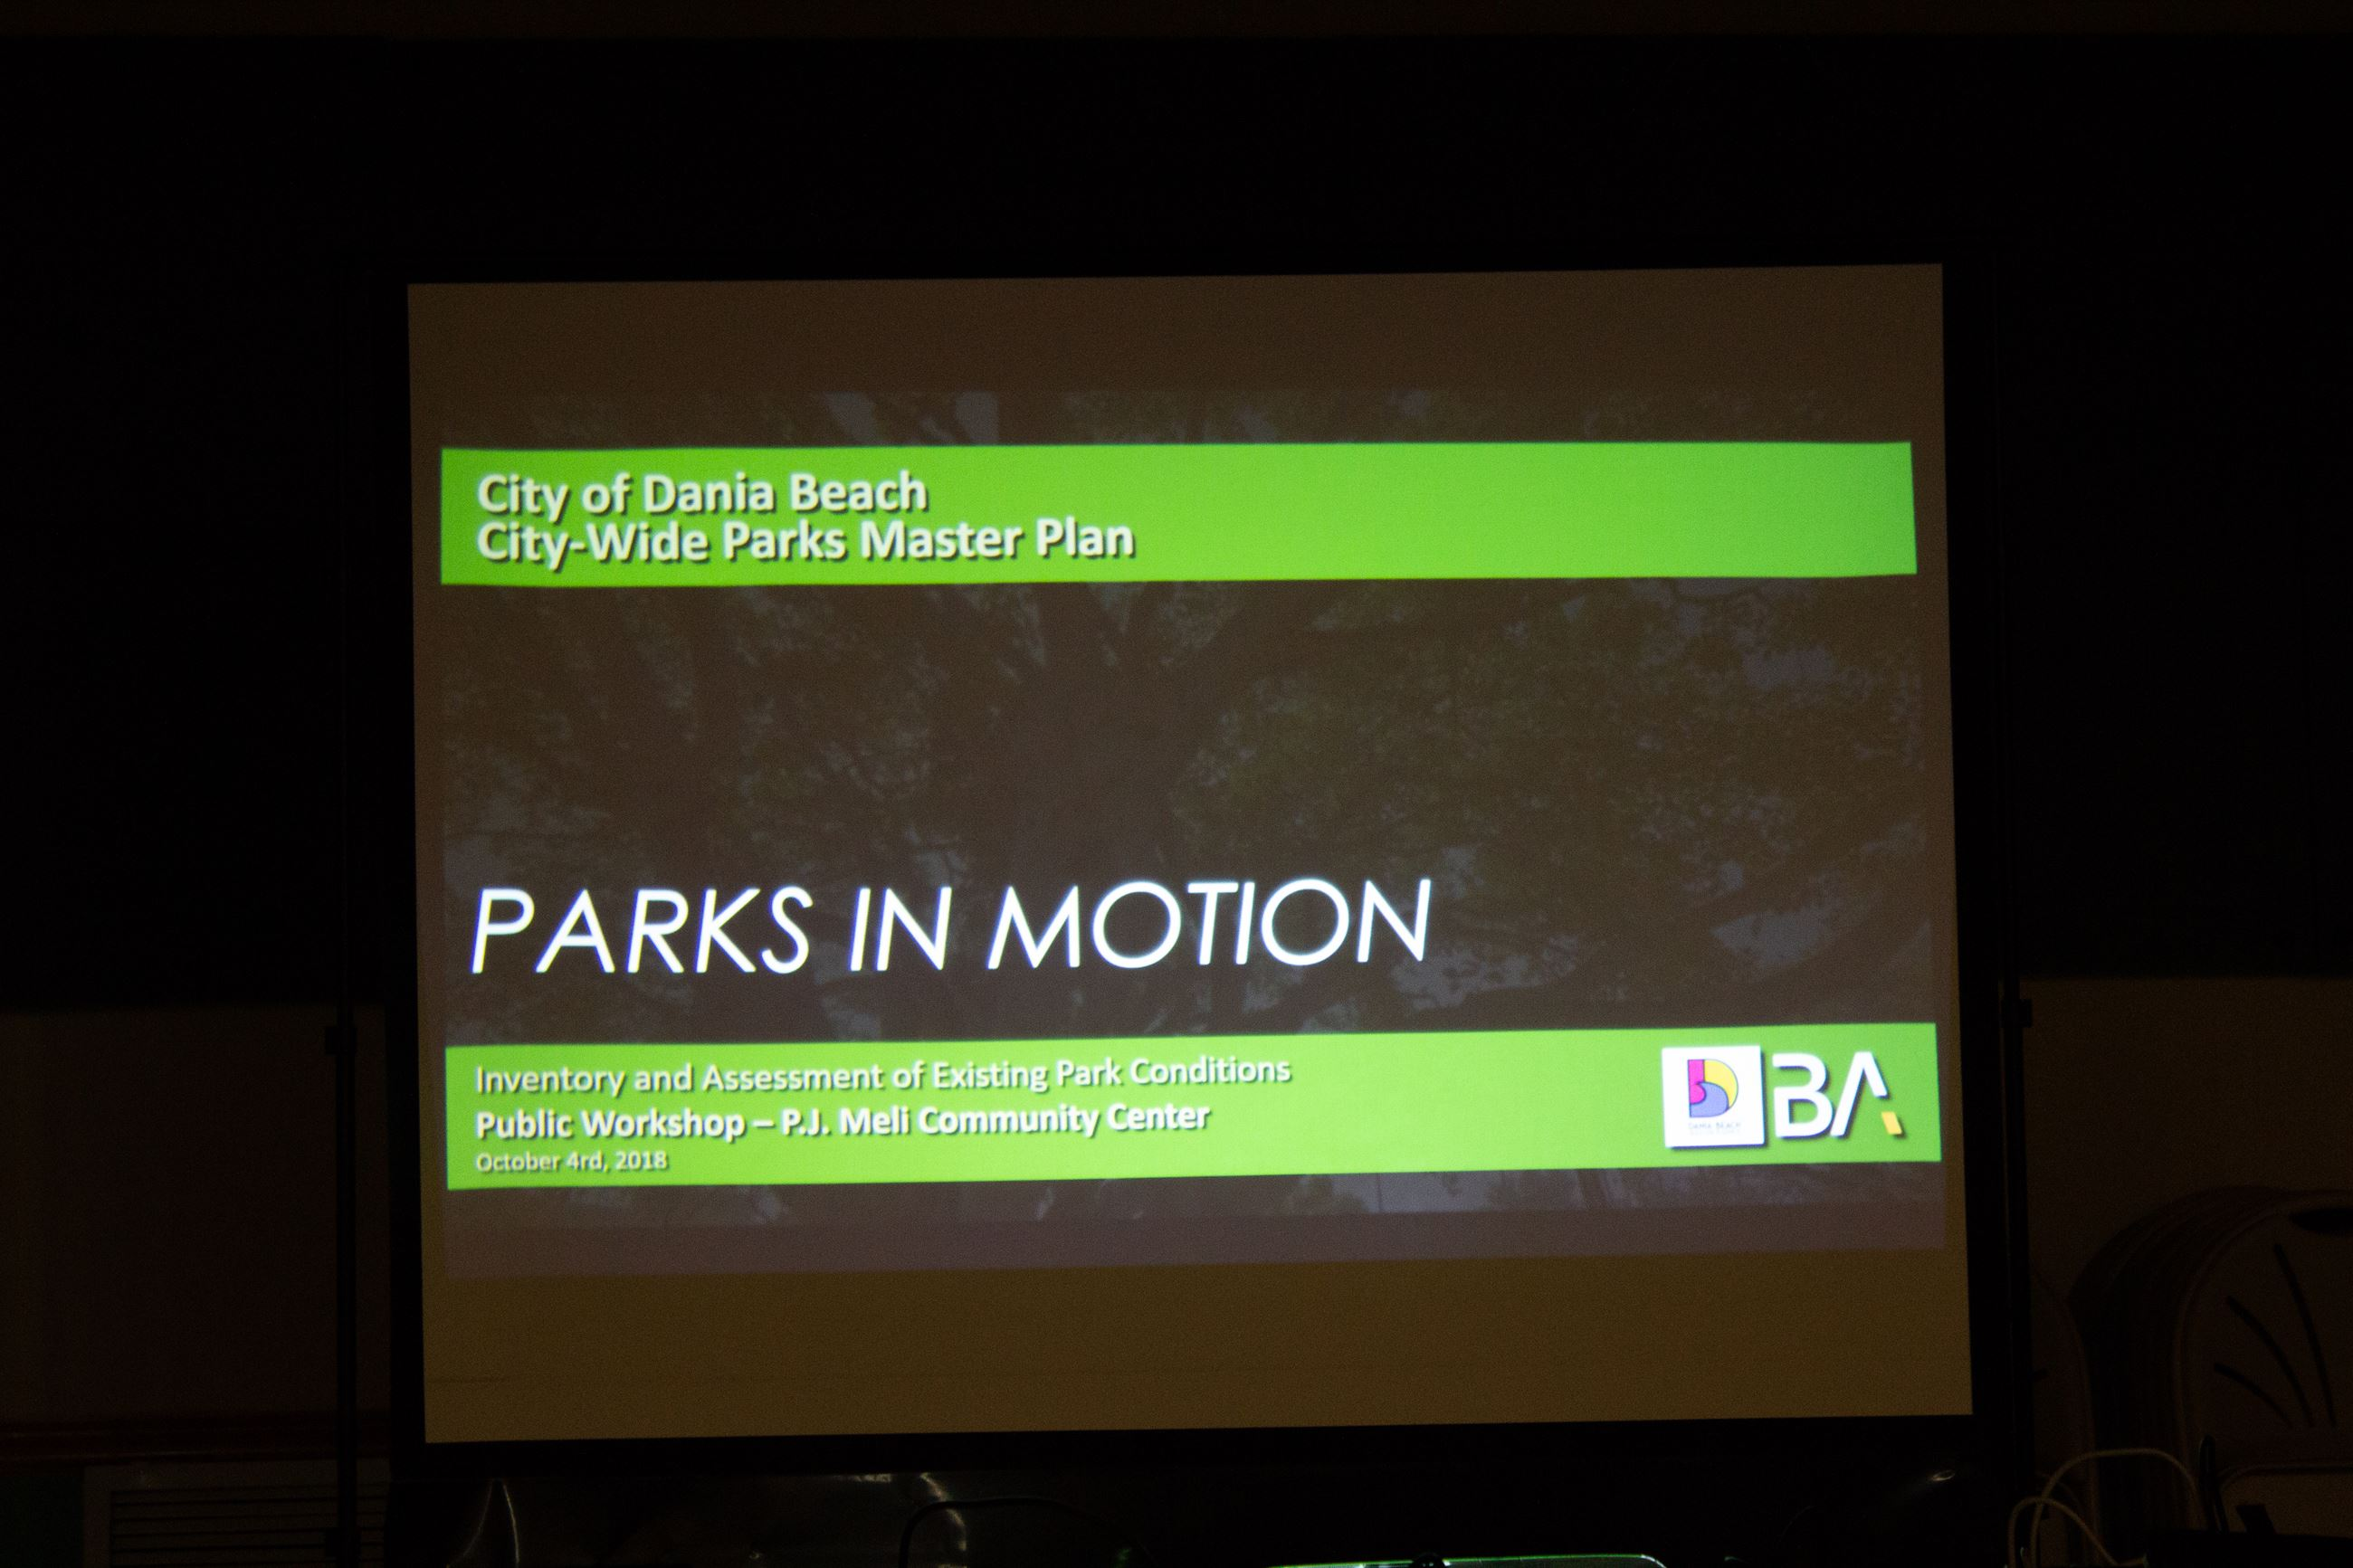 Dania Beach Parks Master Plan Workshop at PJ Meli Park - PARKS IN MOTION